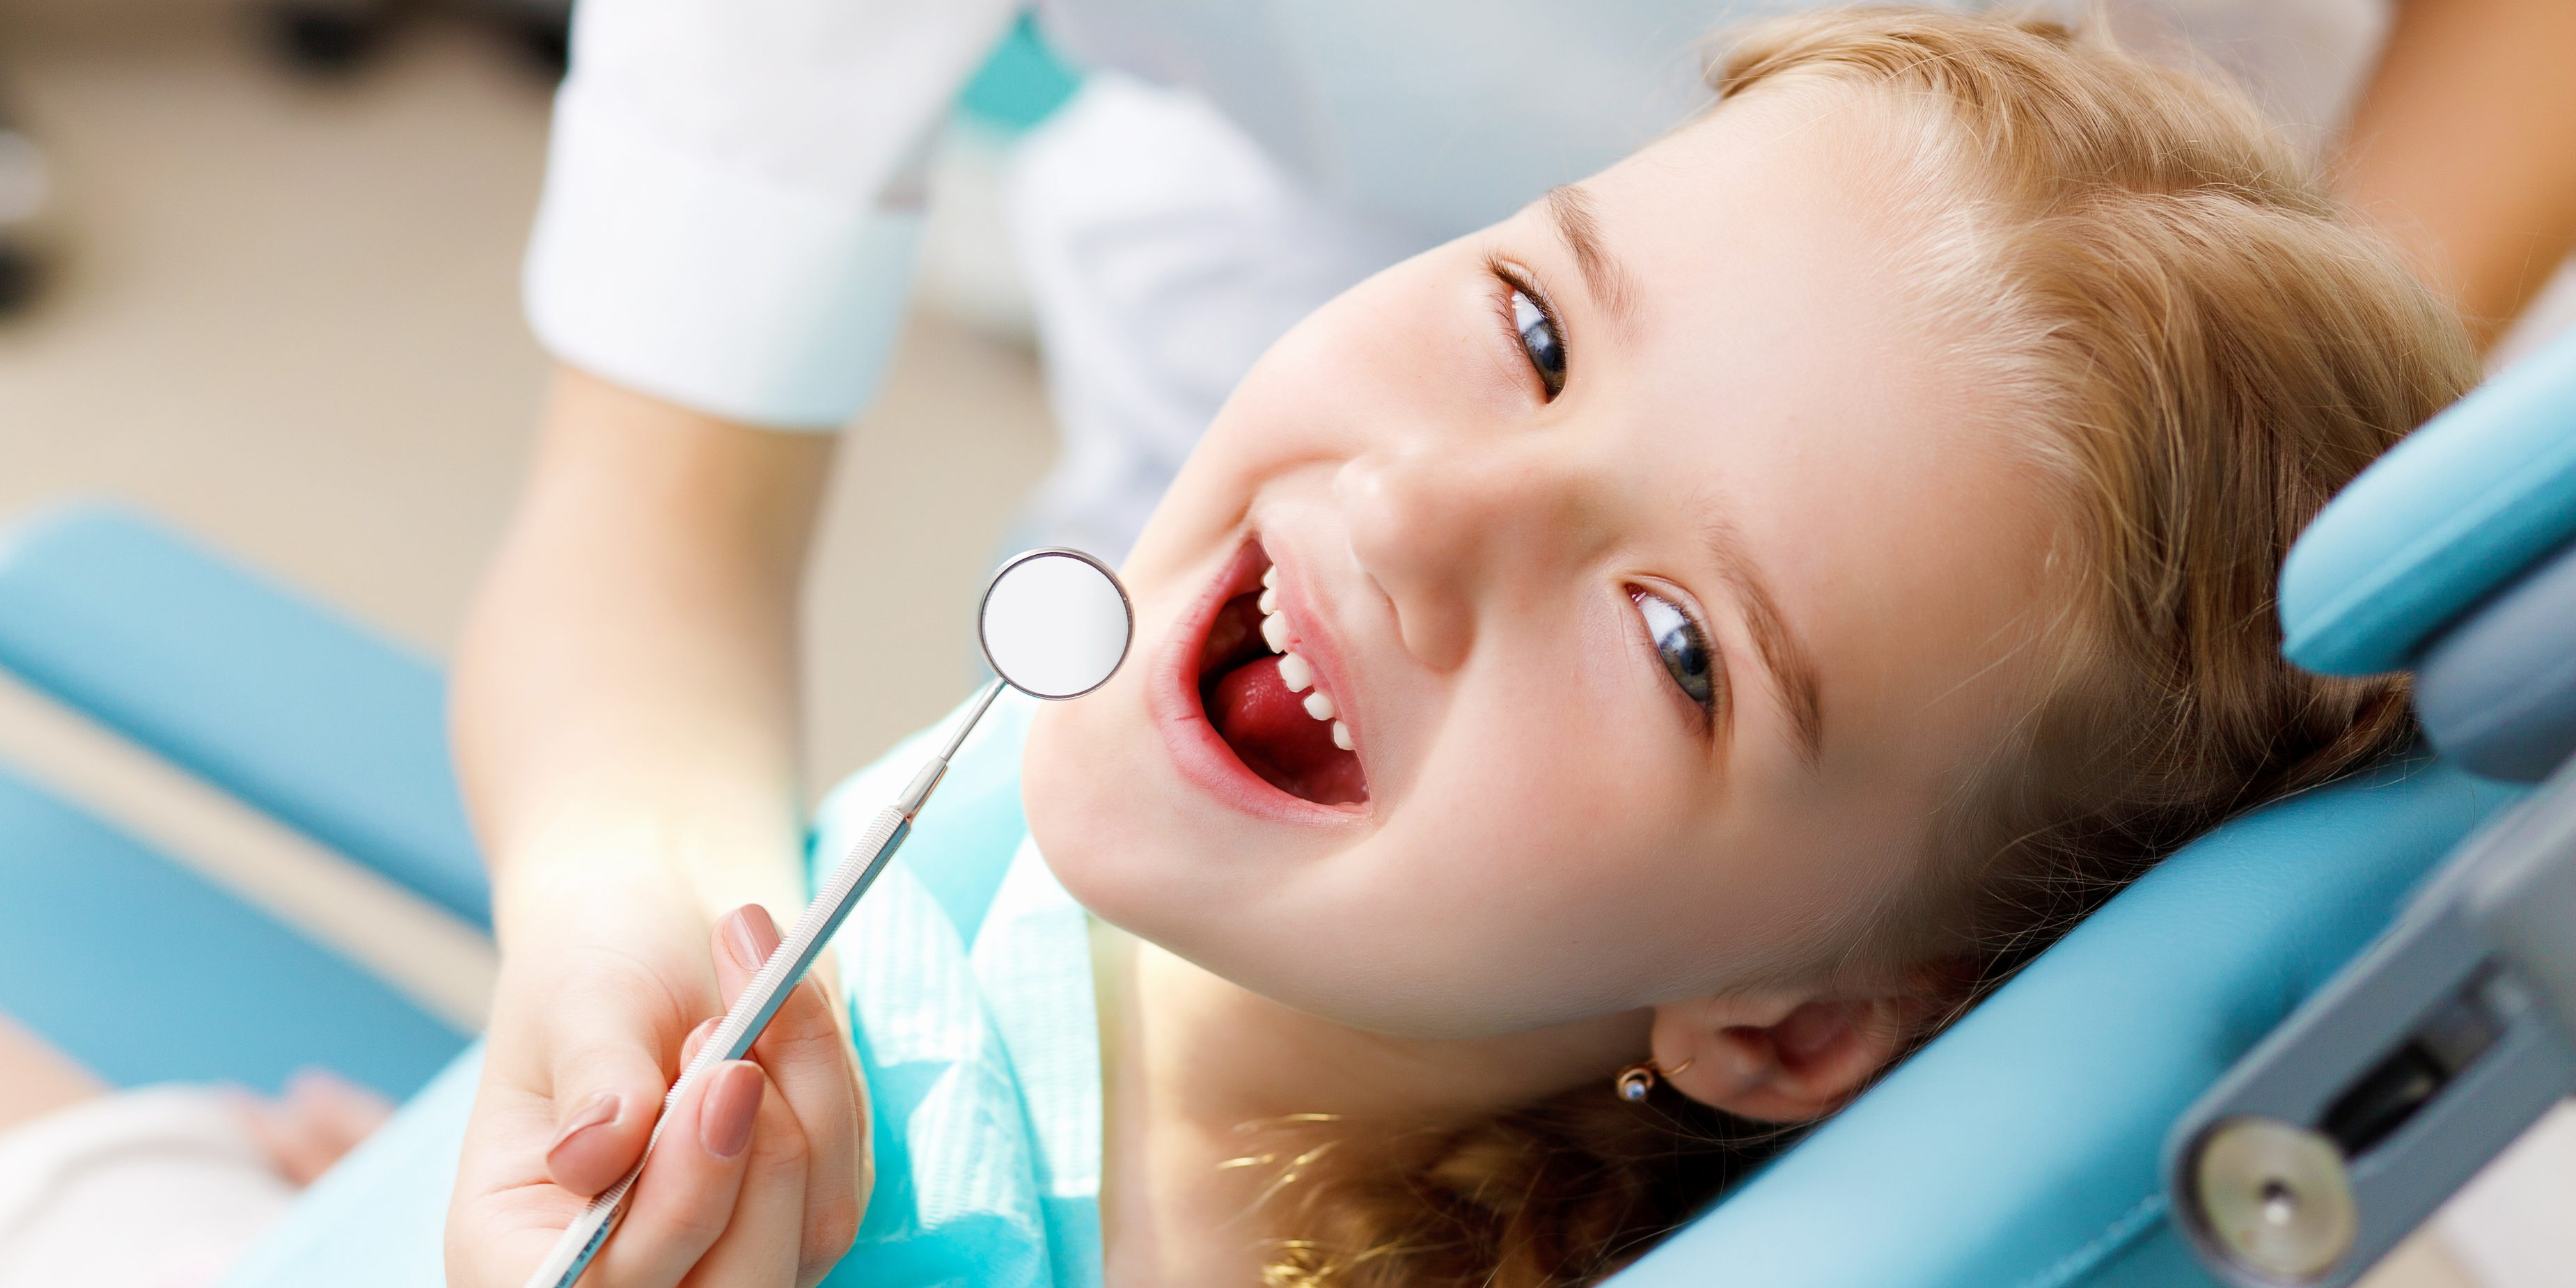 The Key Benefits of Seeing a Family Dentist